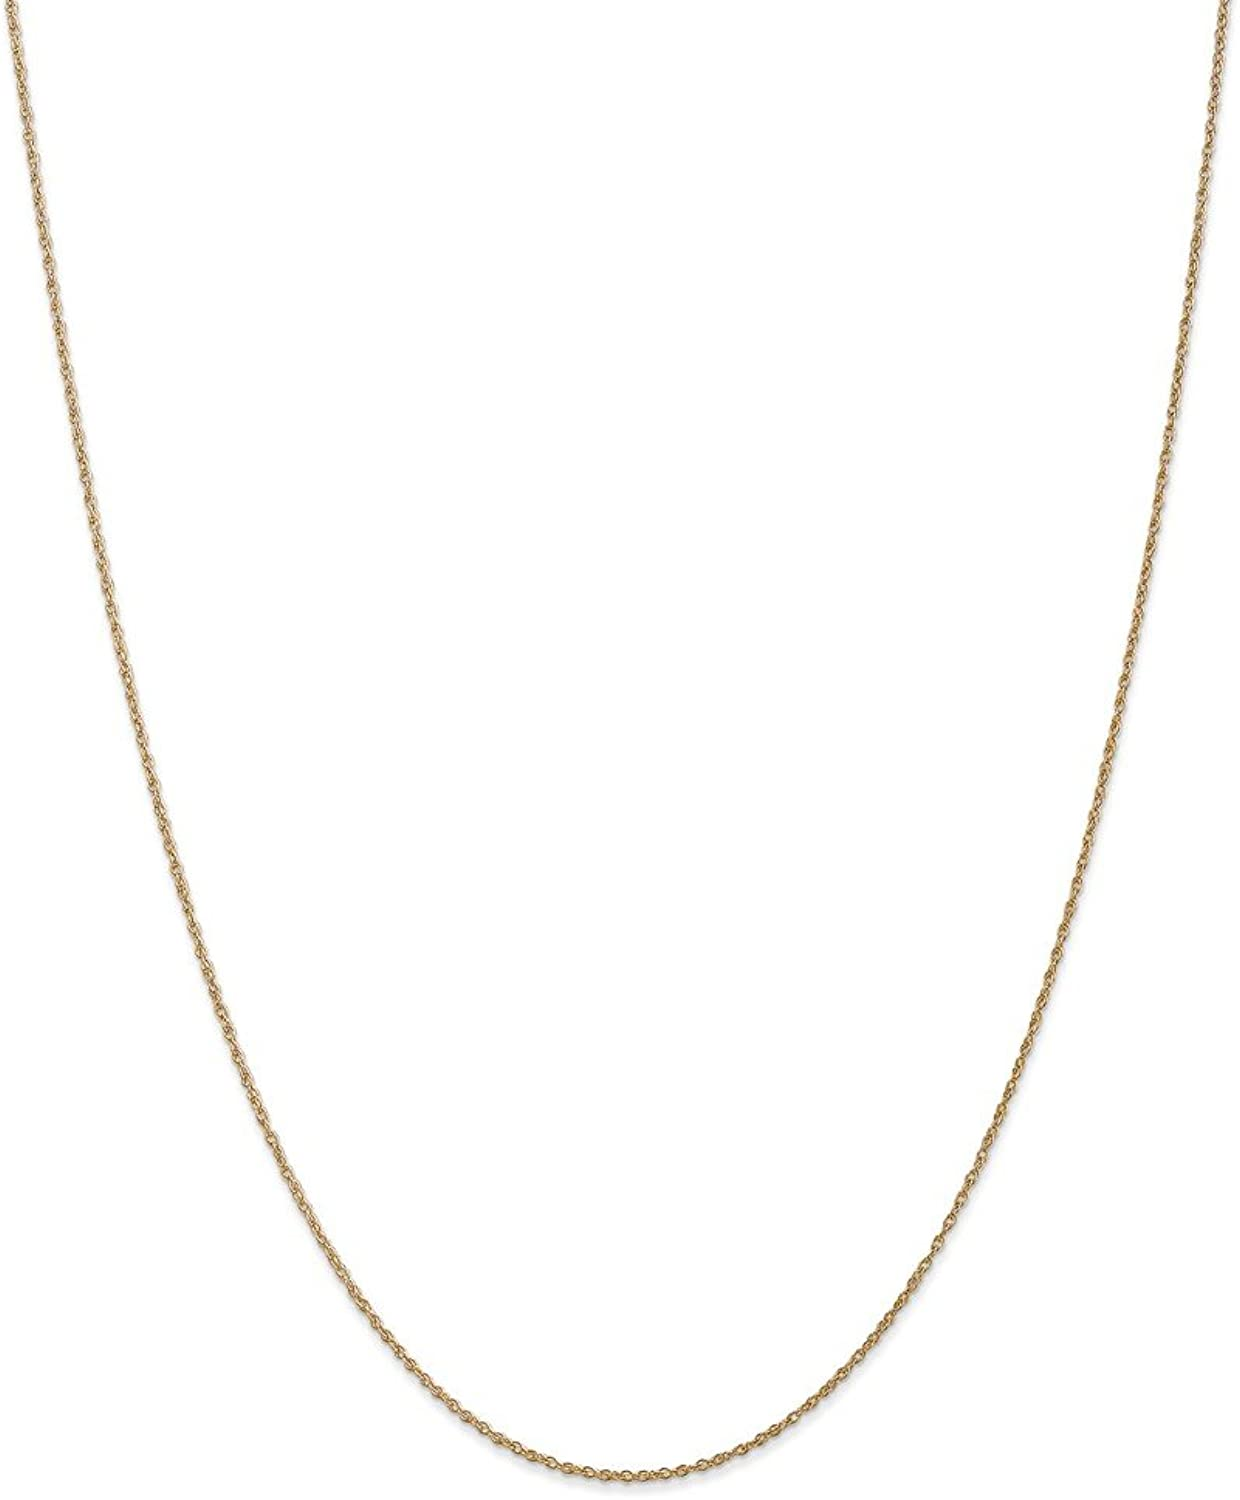 Beautiful Yellow gold 14K Yellowgold 14k .8mm LightBaby Rope Chain